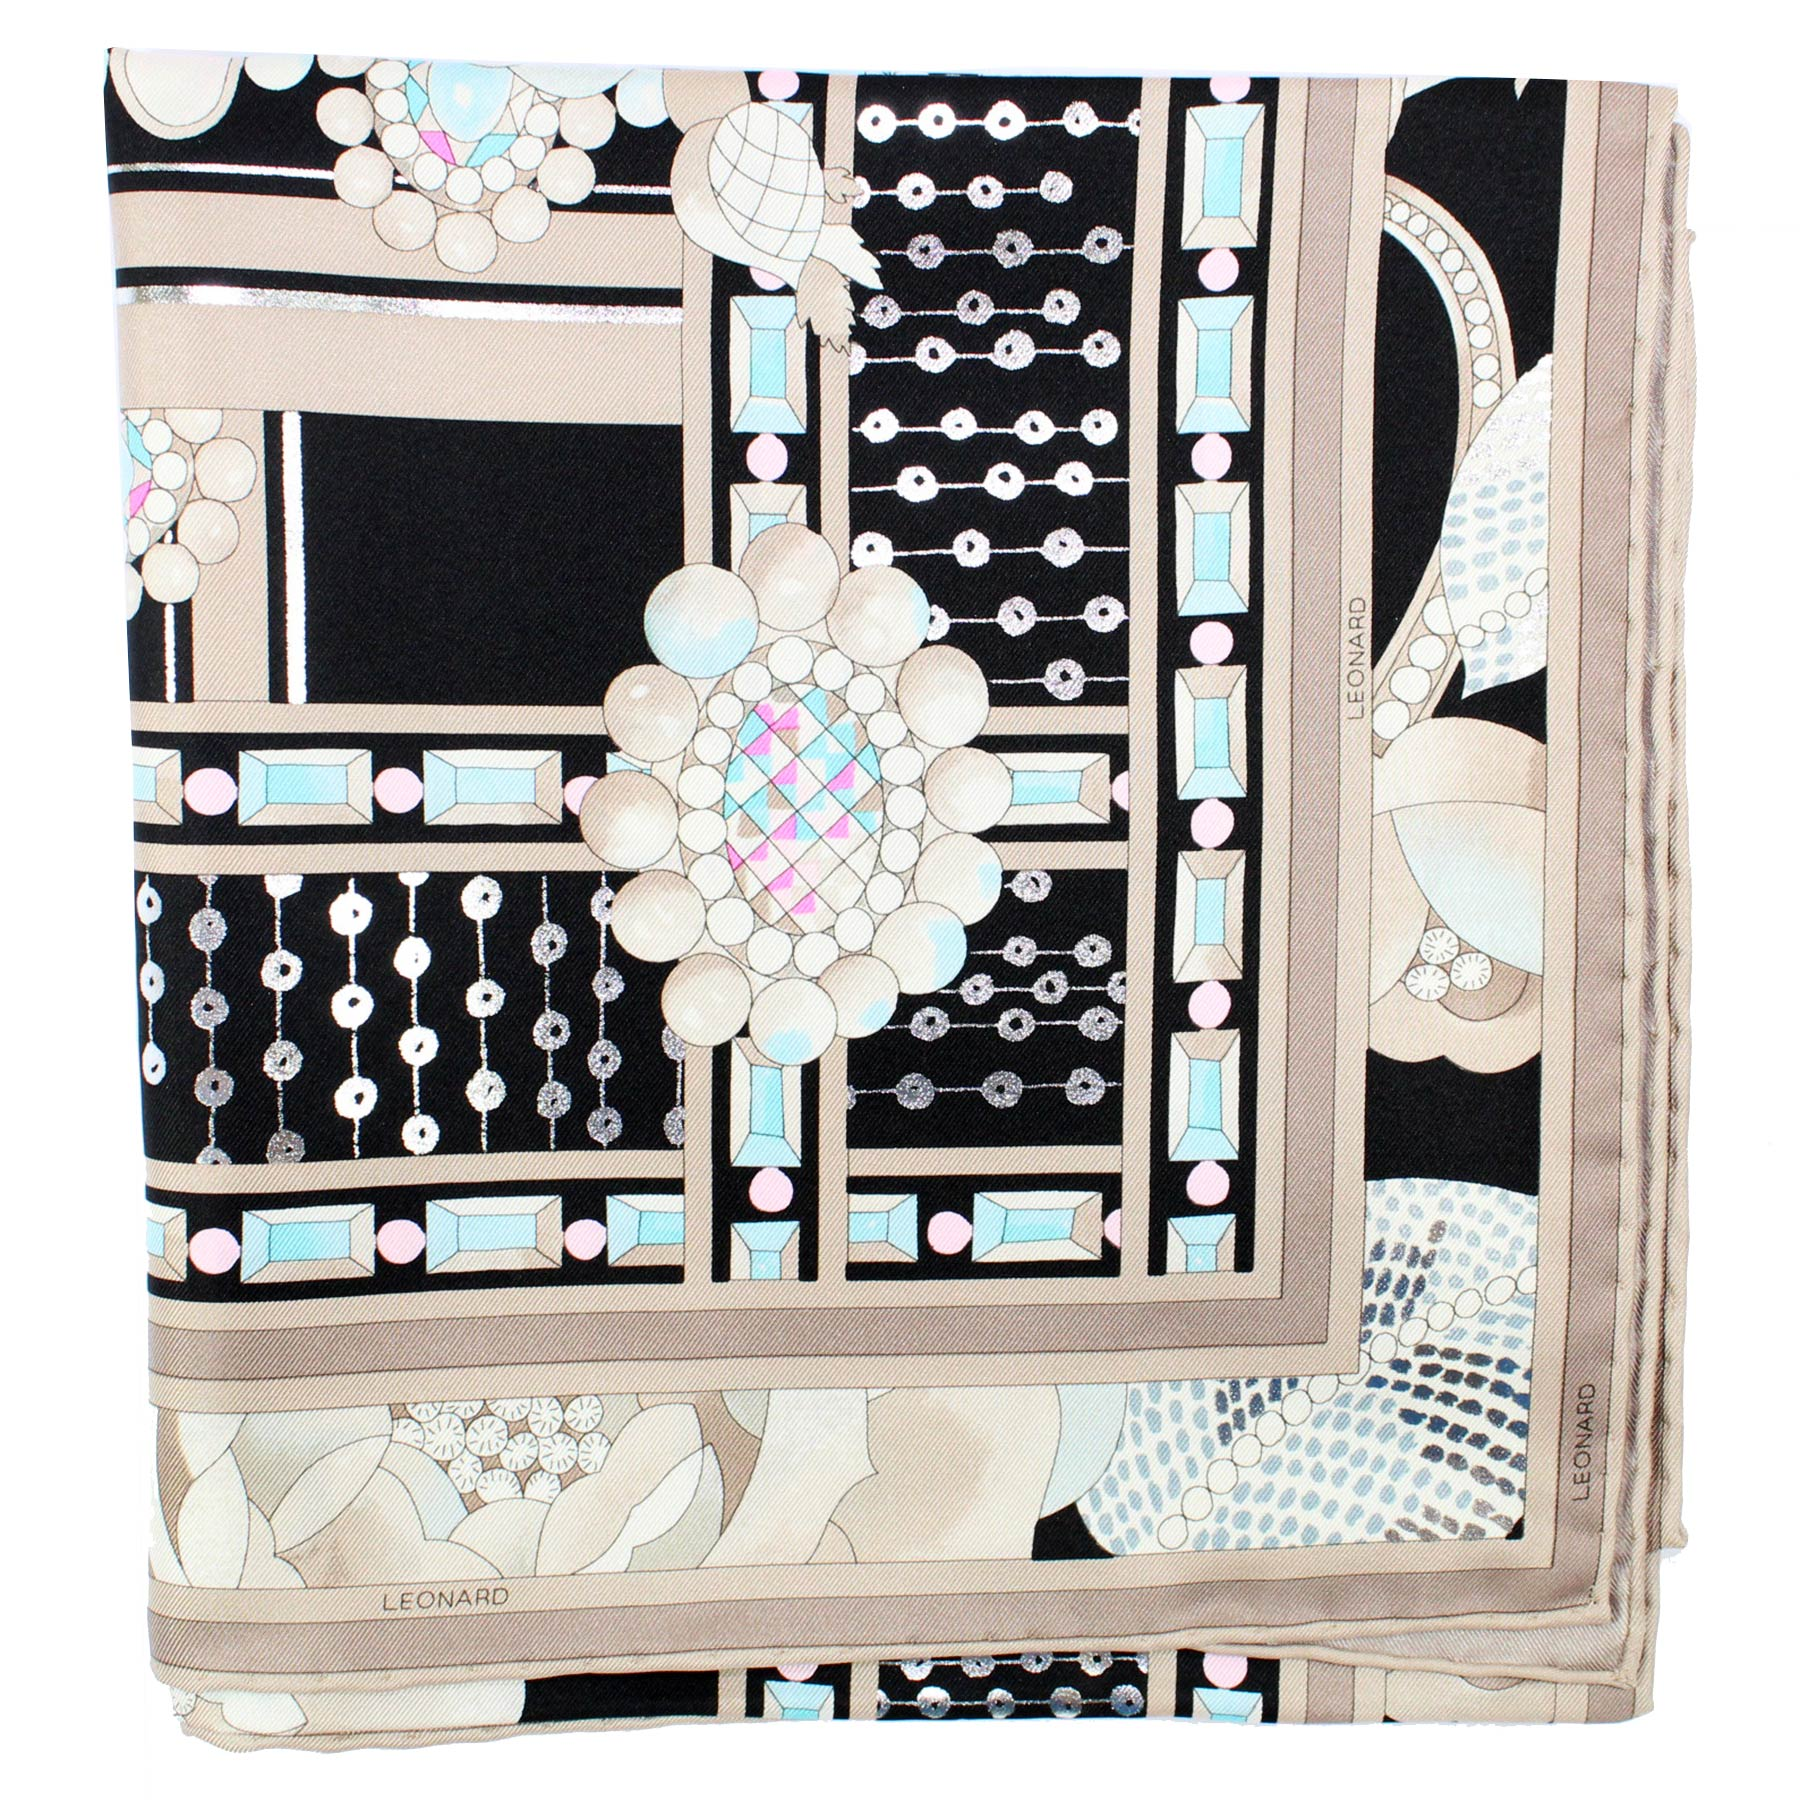 Leonard Scarf Cream Black Aqua Floral New